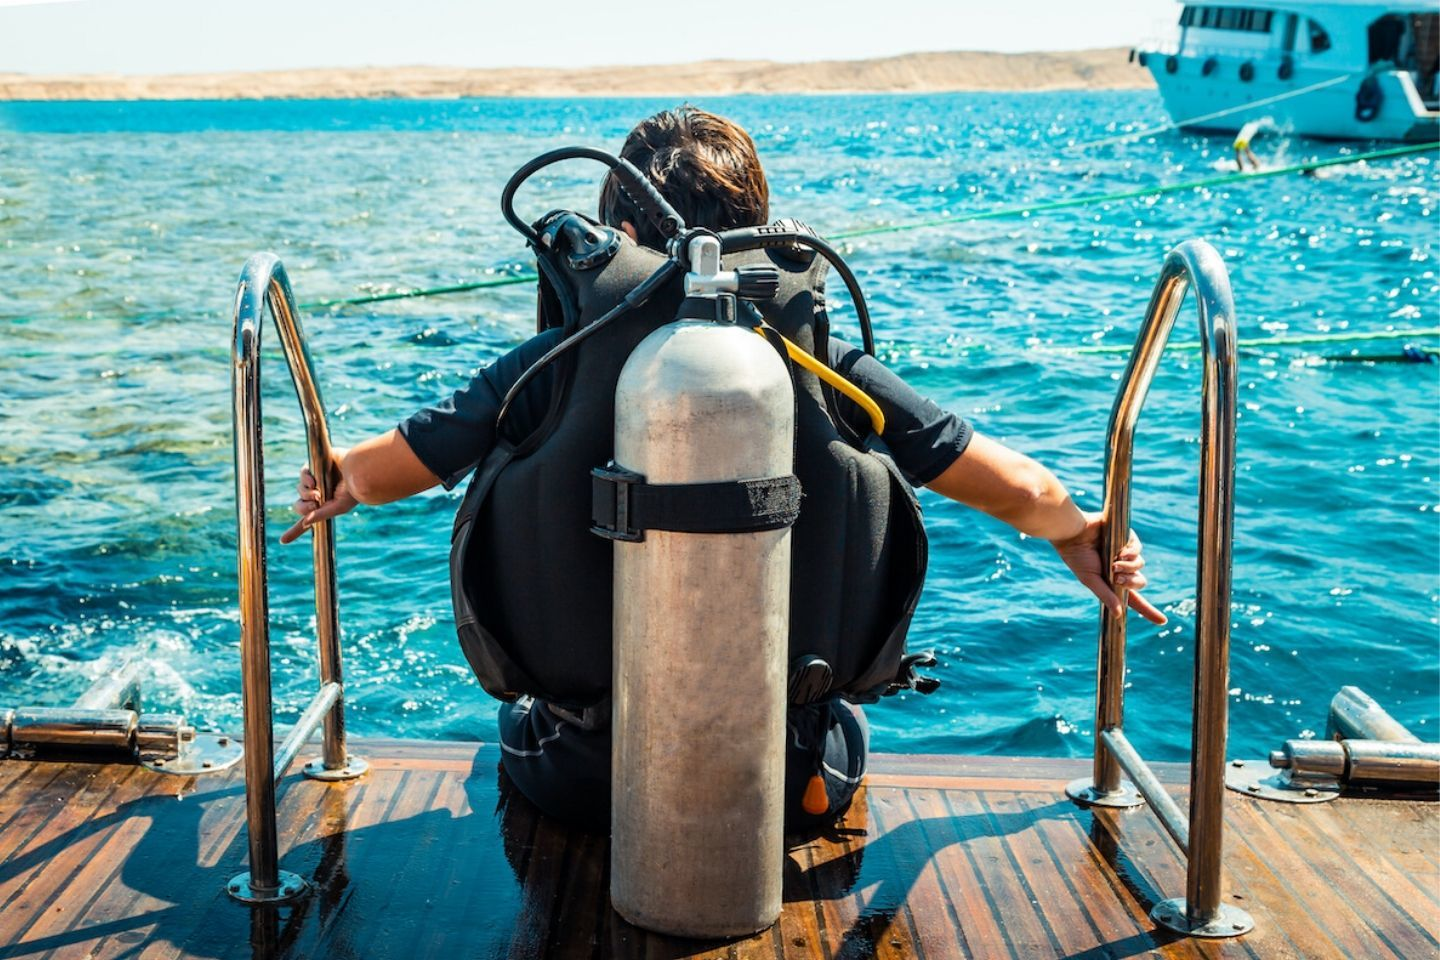 diver getting ready to go into the water